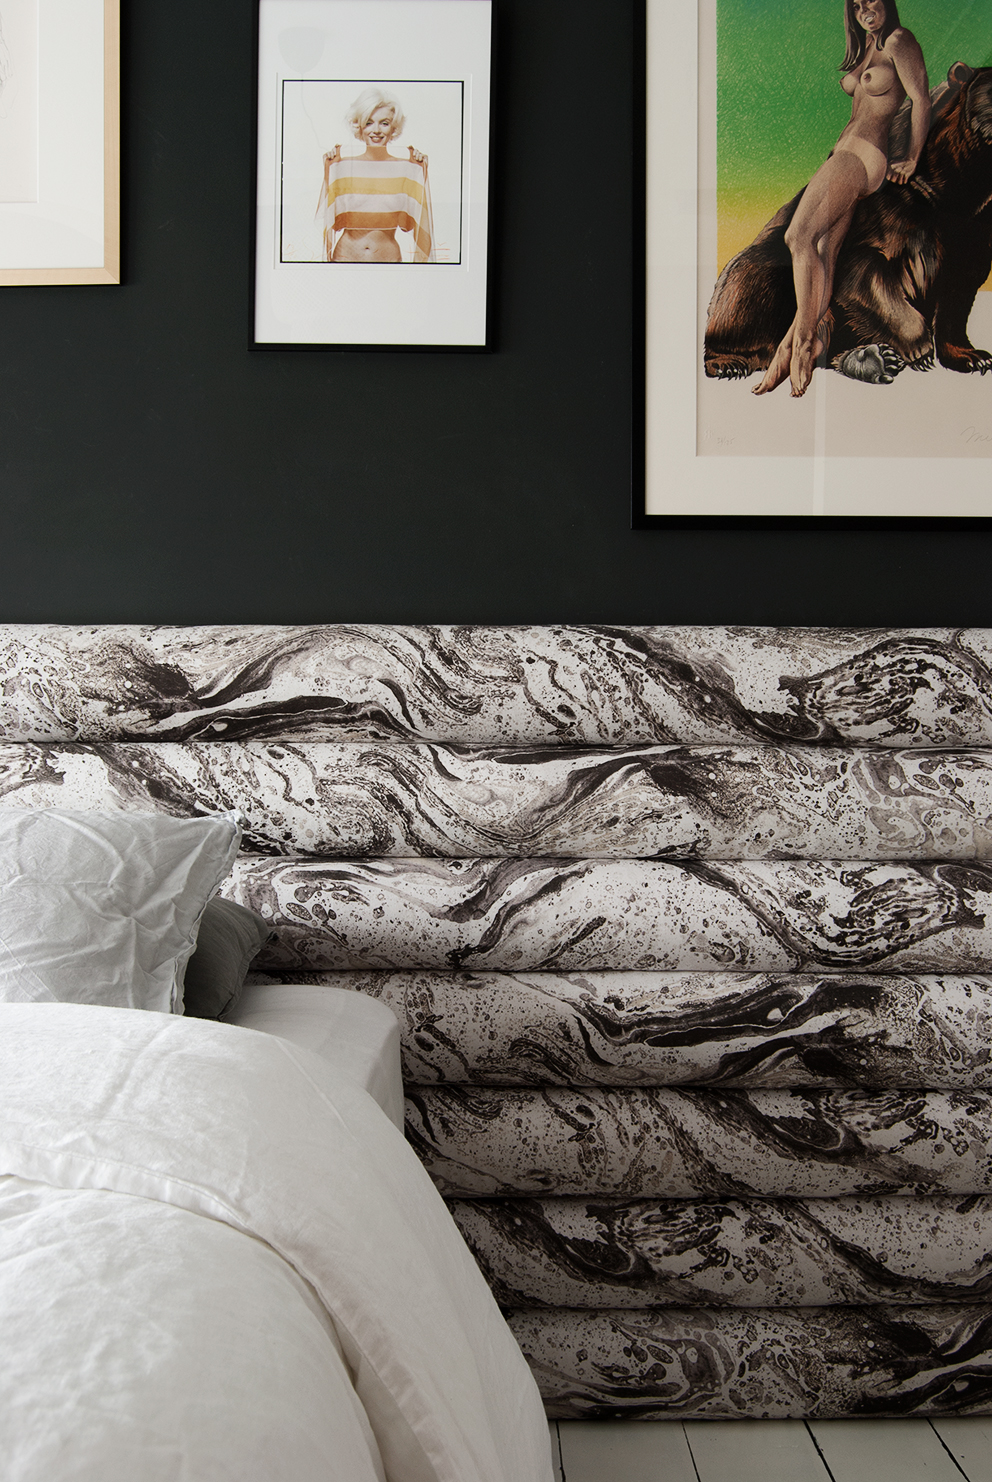 French For Pineapple Blog - Wall To Wall Channel Tufted Headboard.  Marbled fabric . Black Gallery Wall behind bed.